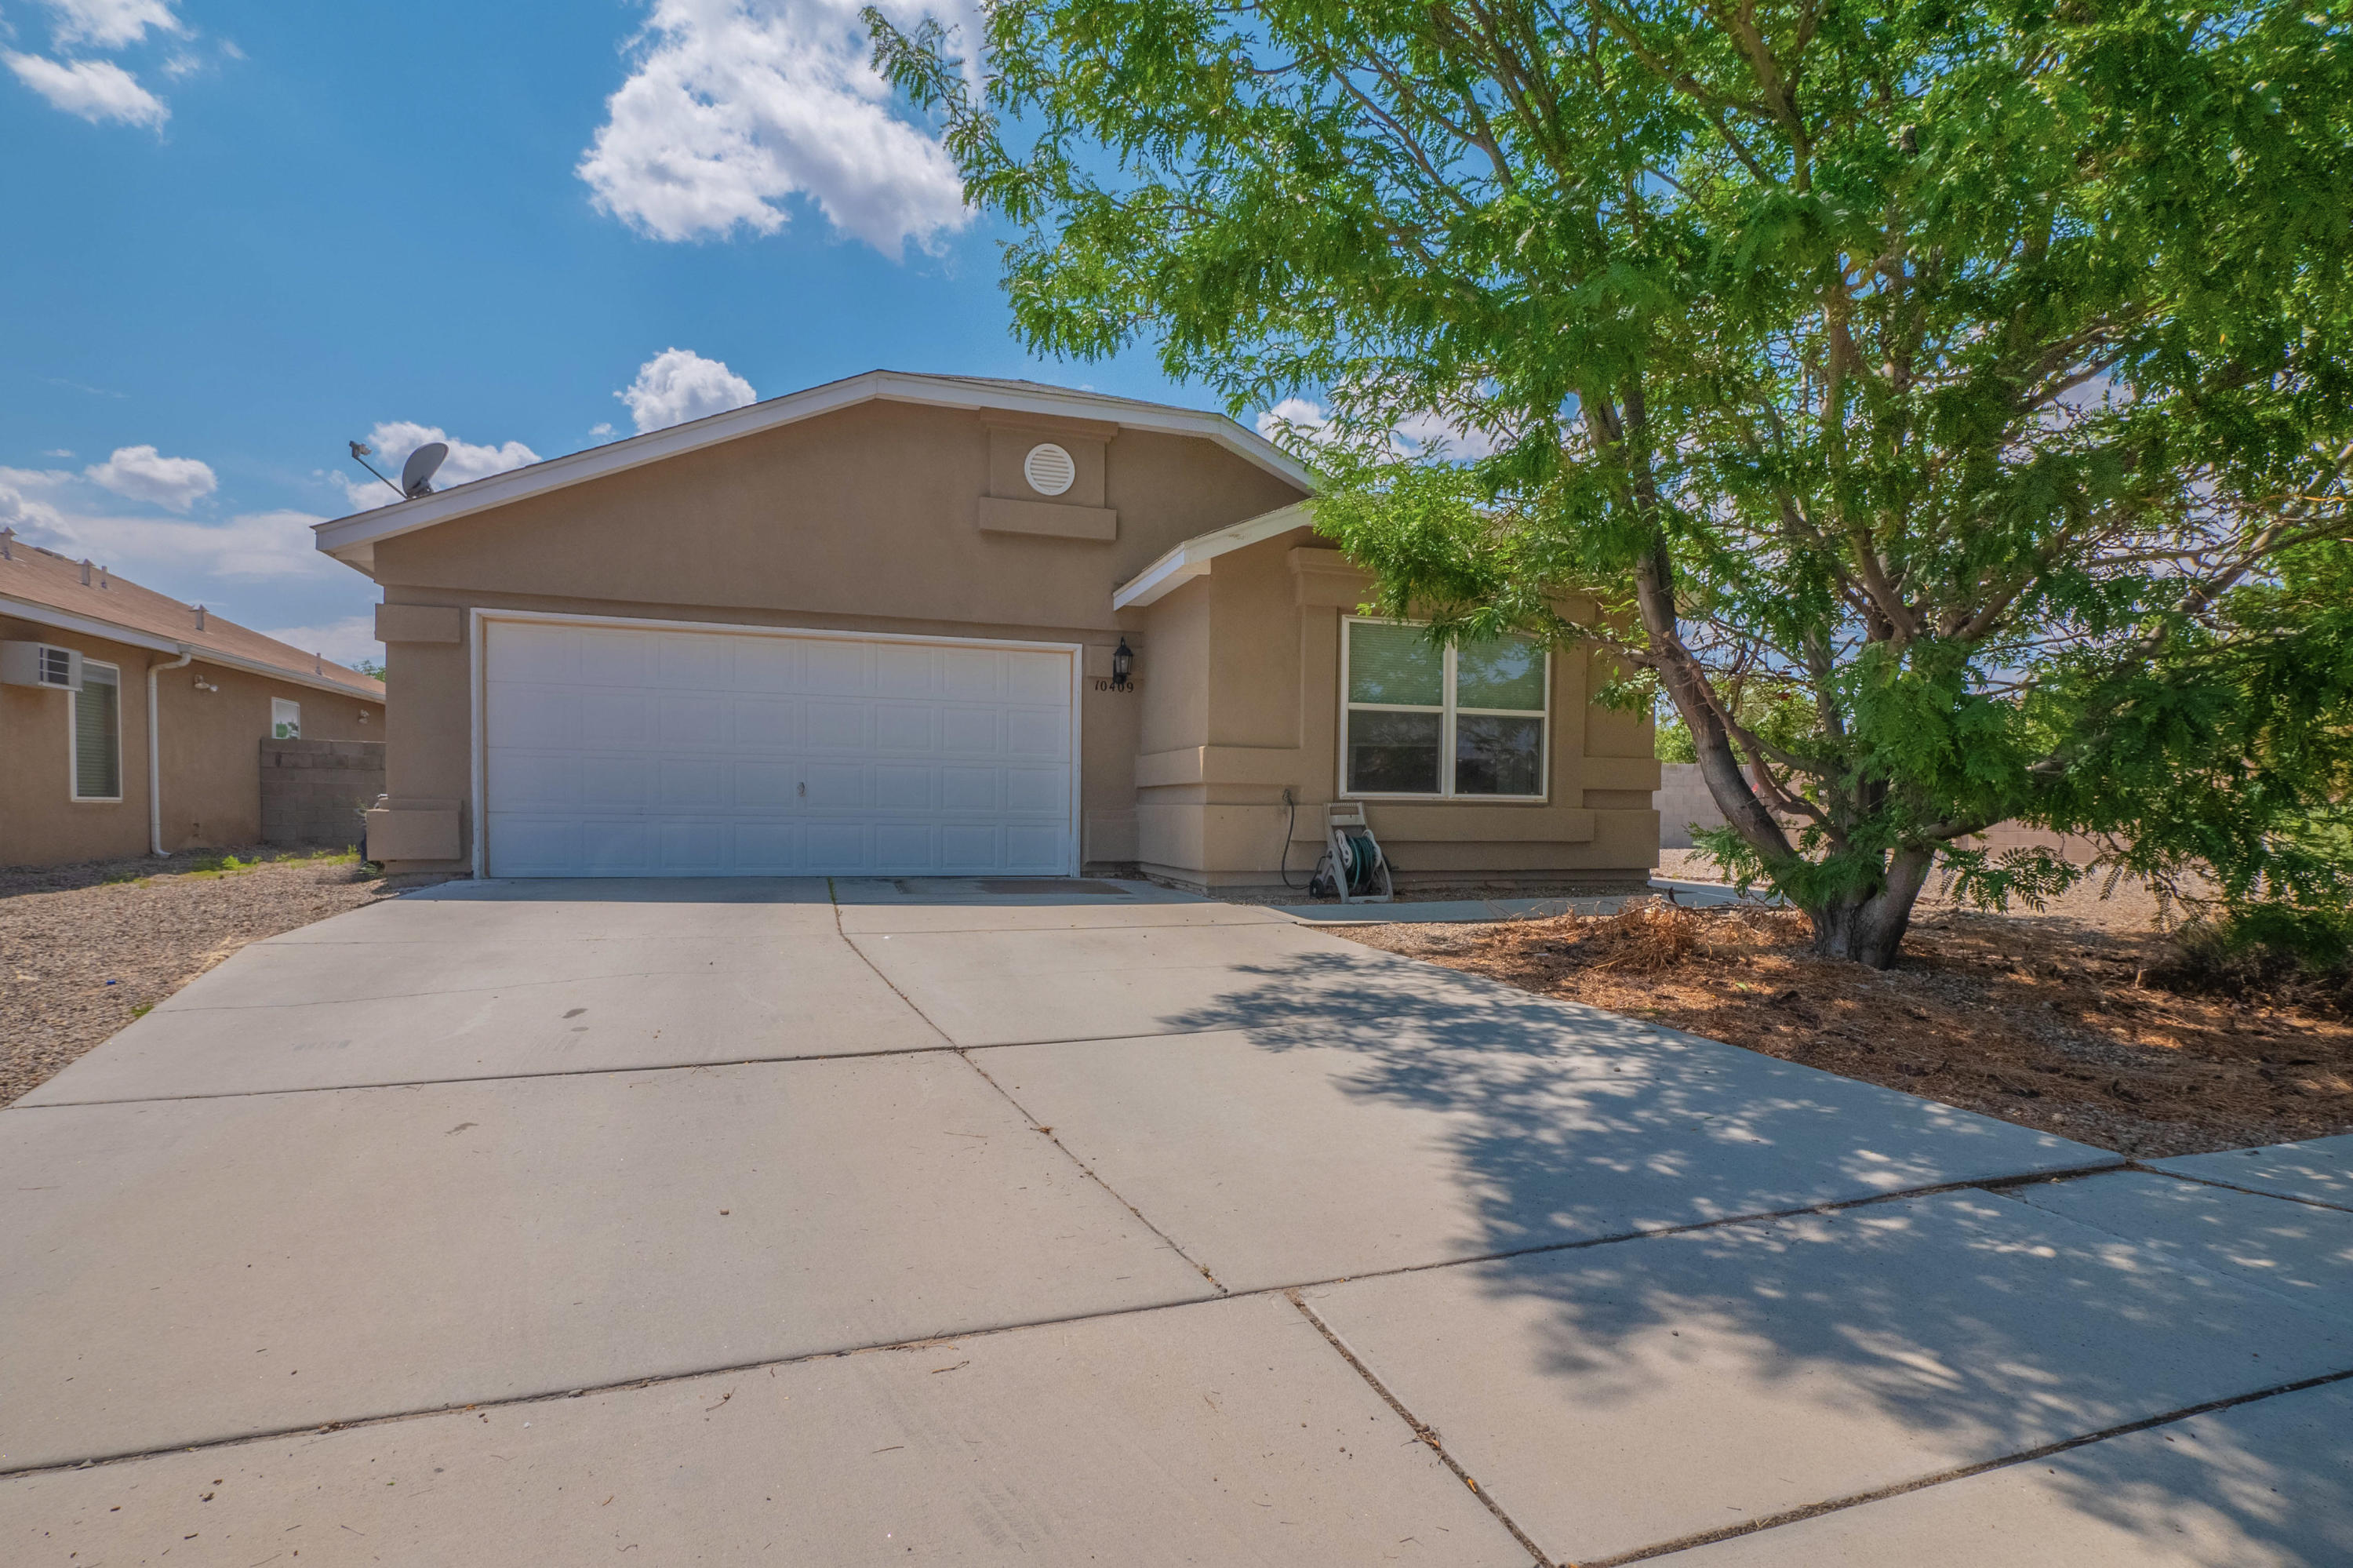 This beautiful and well cared for Artistic home can be yours! With an oversized .21 acre corner lot you have plenty of room for back yard activities. If that's not enough, there is a new beautiful park just across the street. This private Seville neighborhood is very close to Presbyterian Rust and a short drive to Paseo or Rio Rancho. This home features refrigerated air, possible RV side yard parking, updated fixtures and July 2021 kitchen cabinet resurfacing as seen in the photos. No HOA! You will not find another double sized lot like this in this price range! Come see it today.